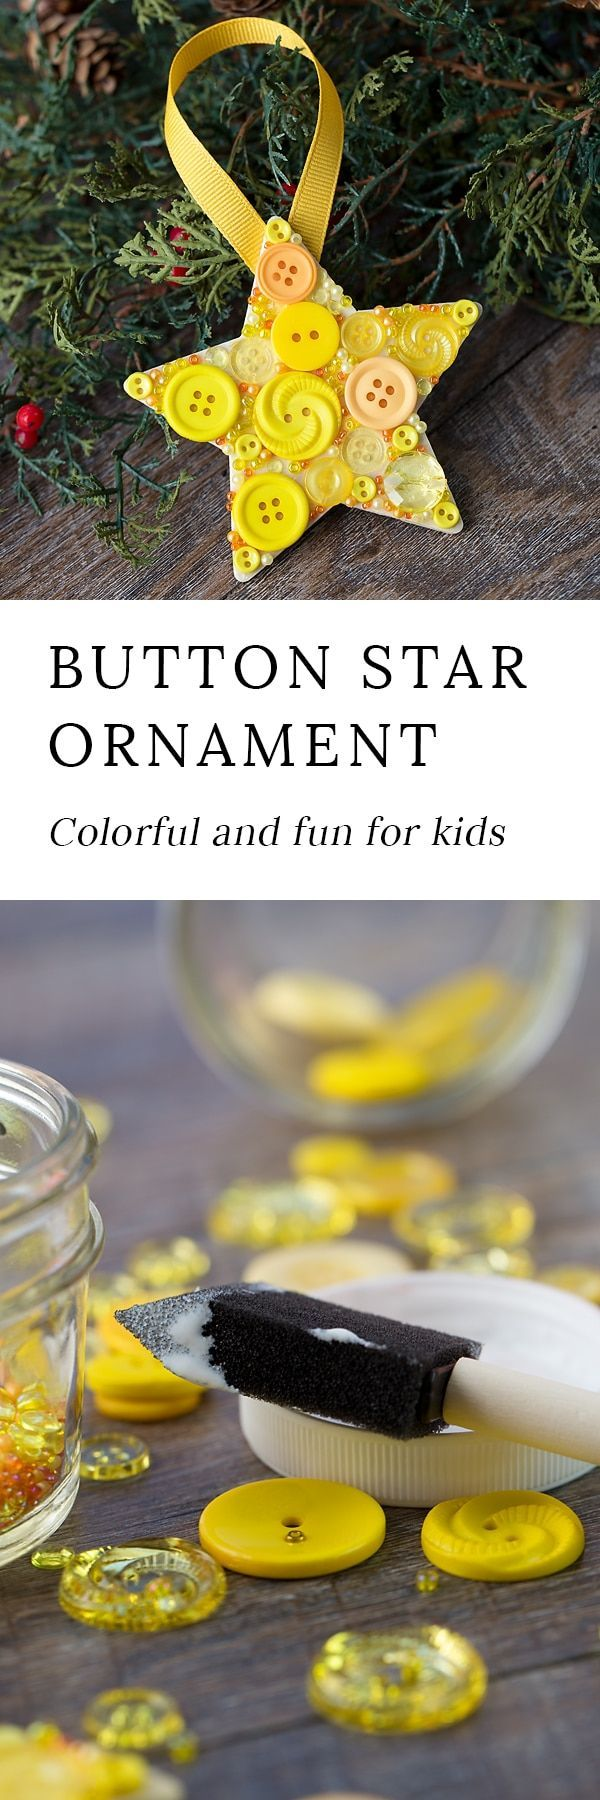 Just in time for Christmas, learn how to make a colorful button star ornament with a wooden star, yellow buttons, and glue. #christmas #kids #buttonart #kidsmadechristmas via @https://www.pinterest.com/fireflymudpie/